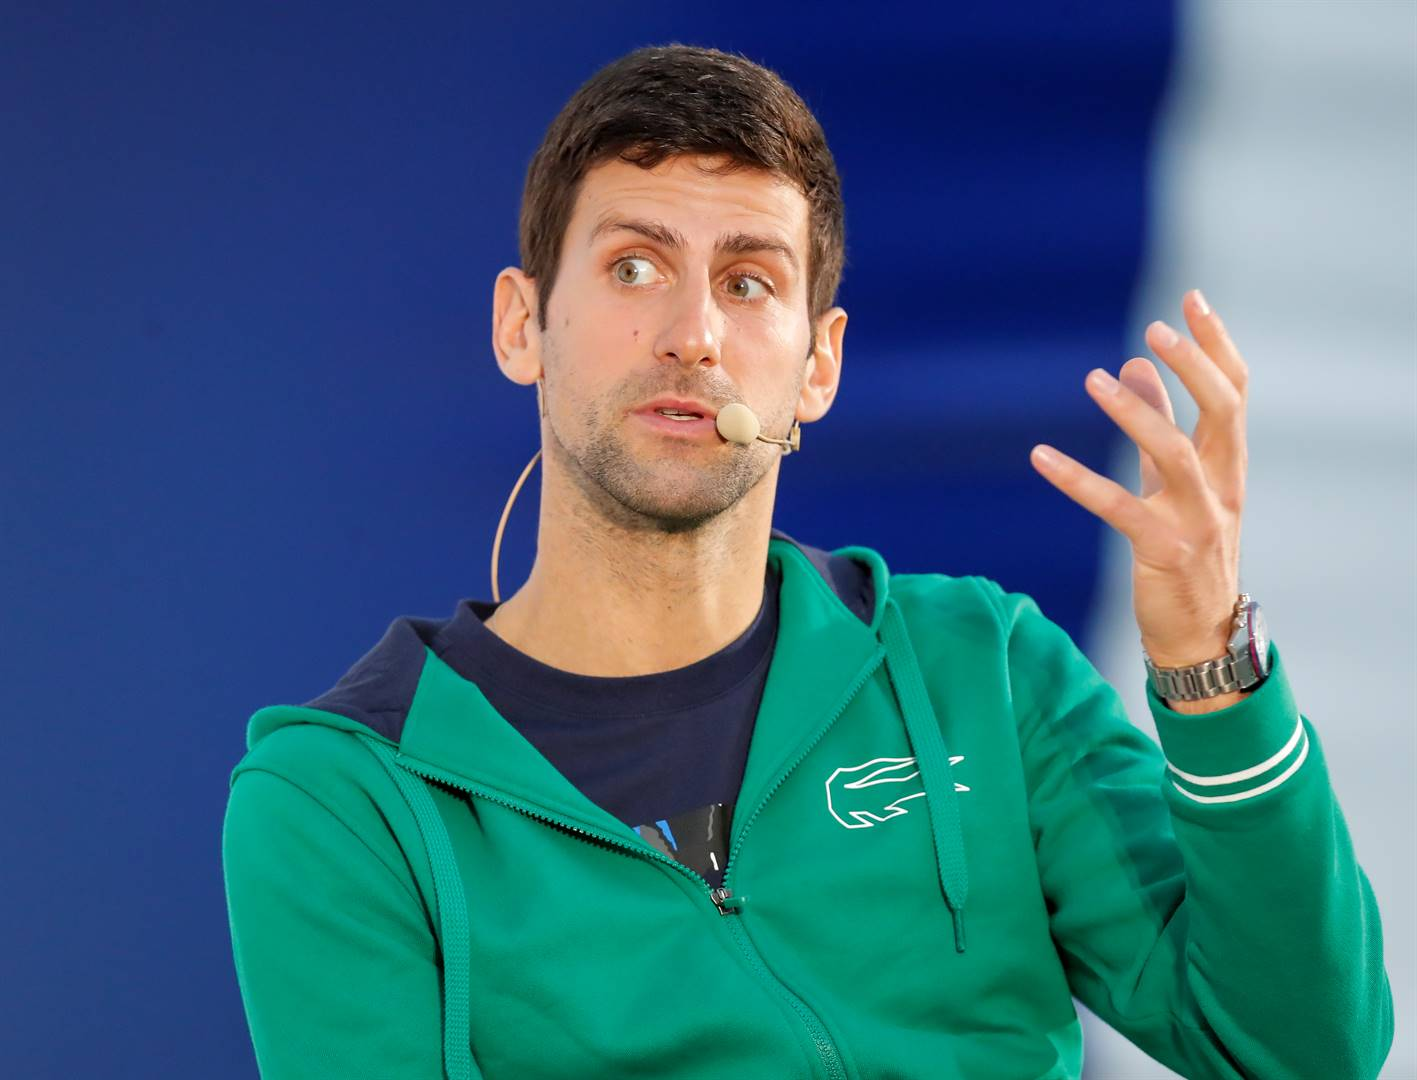 Novak Djokovic S Us Open Disqualification Caps Off By Far The Worst Year Of His Career Even Though He Hasn T Lost A Single Tennis Match In 2020